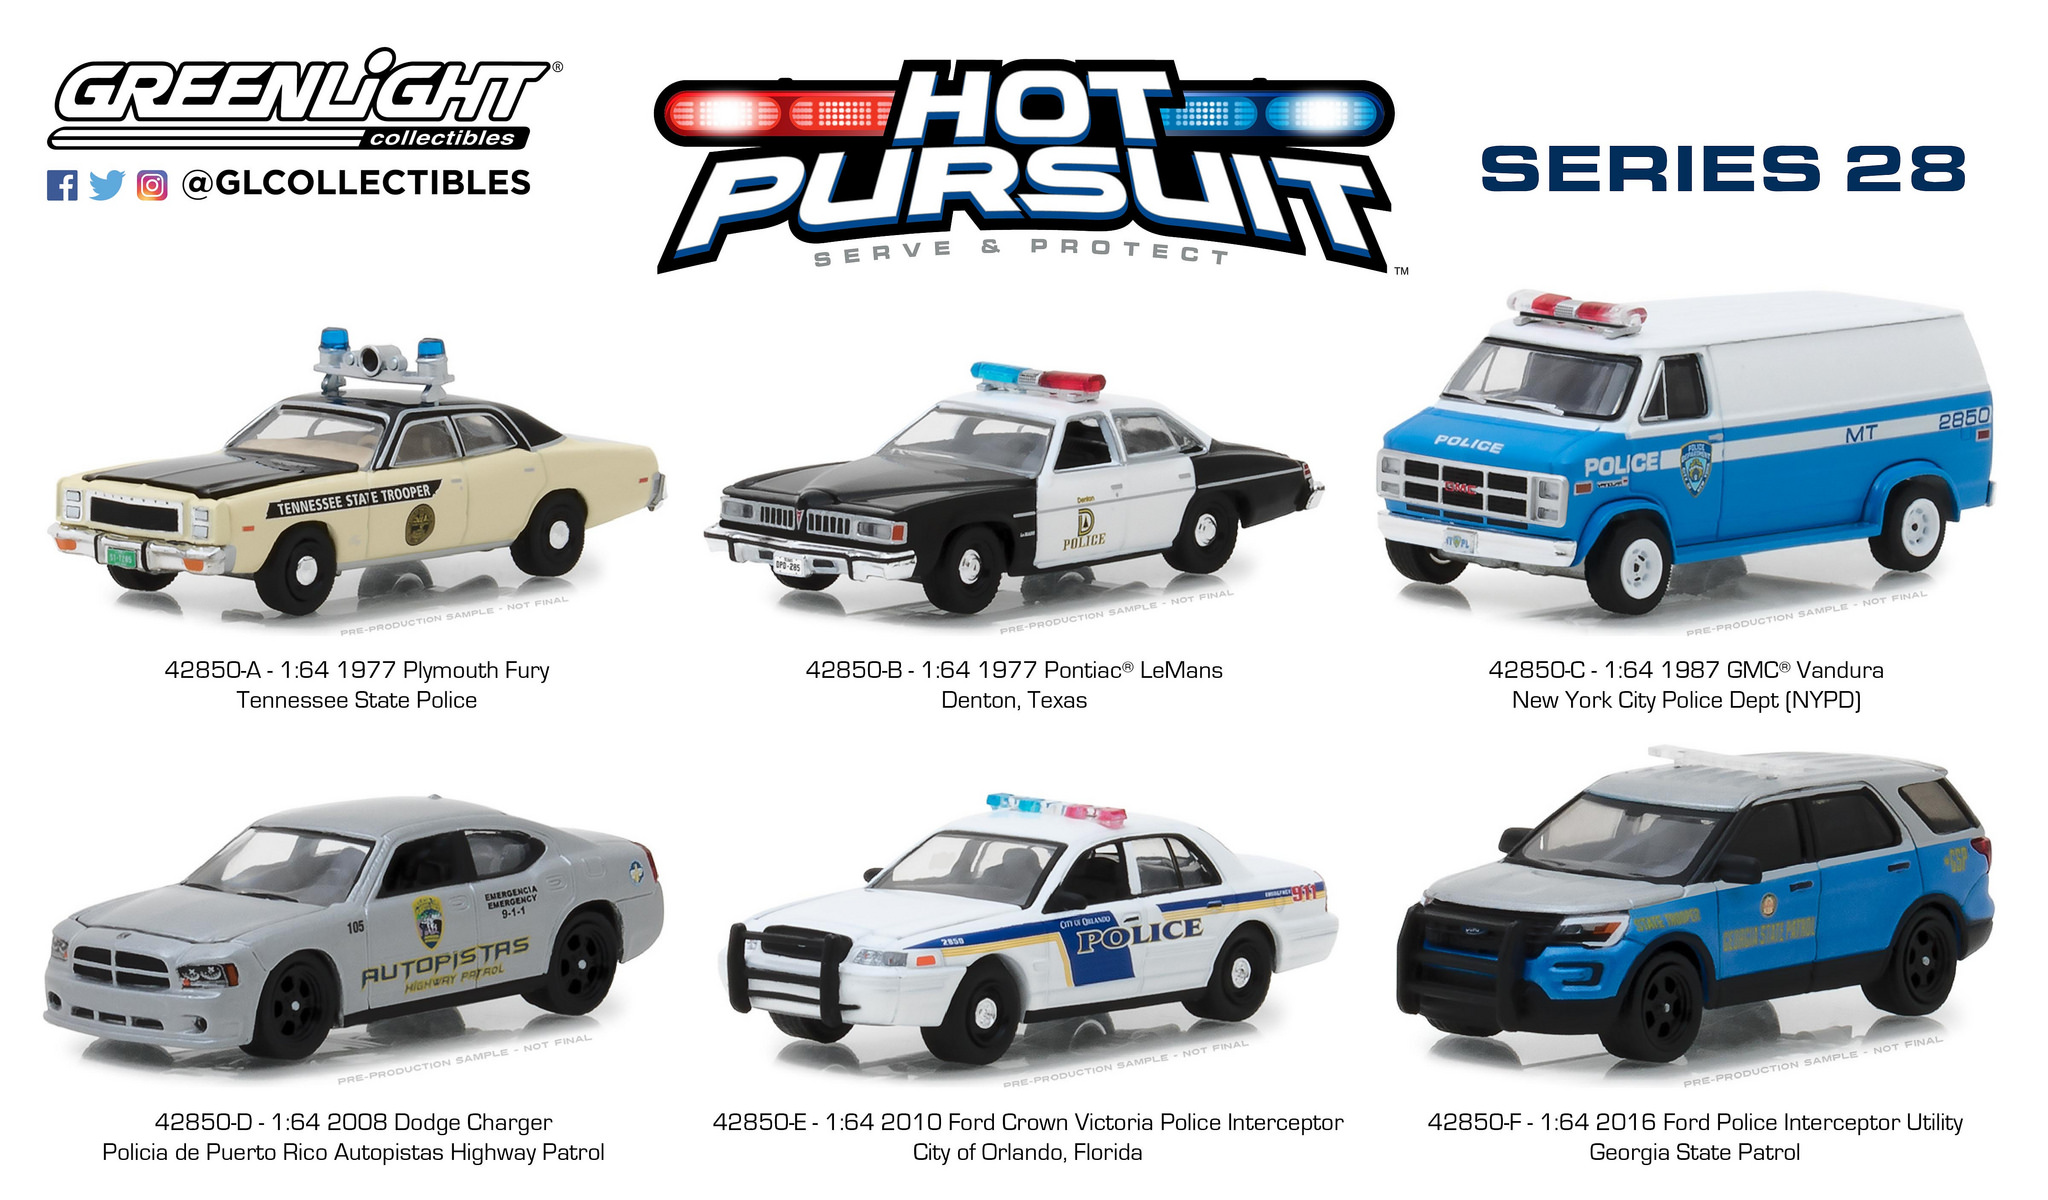 2008 Dodge CHARGER Police Puerto Rico Highway Patrol *** Greenlight 1:64 sale *